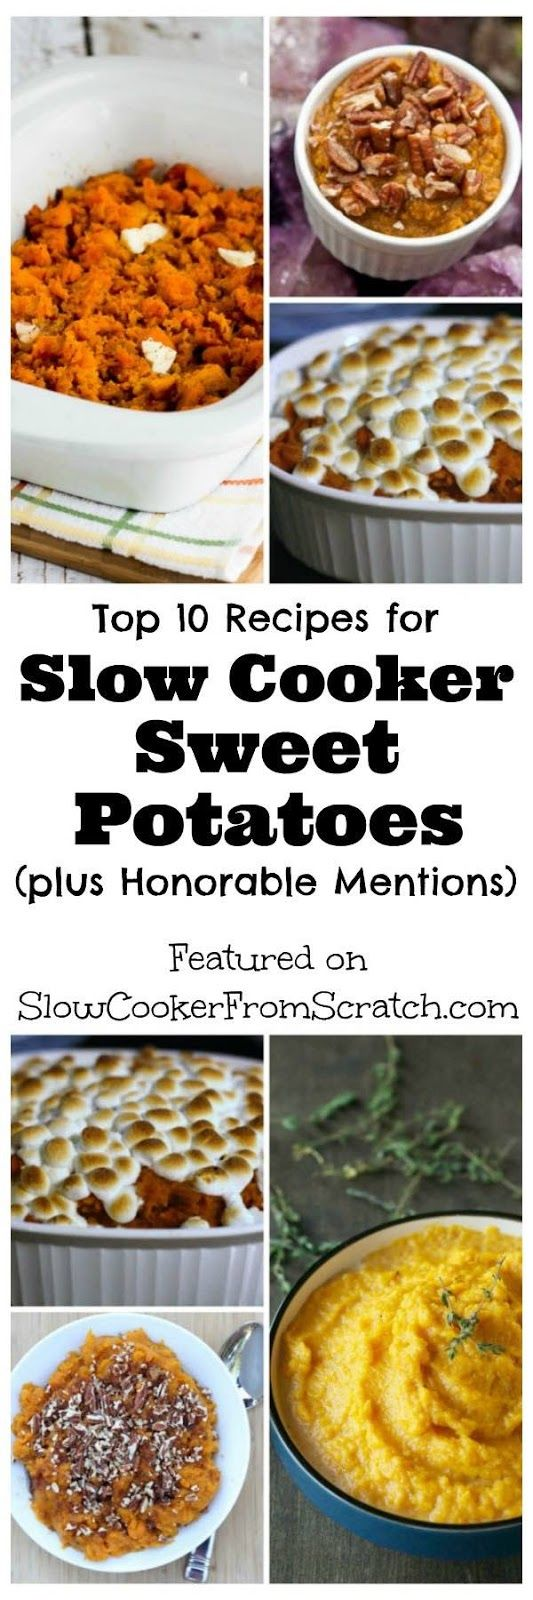 Here are the Top Ten Recipes for Slow Cooker Sweet Potatoes plus Honorable Mentions; use one of these recipes to make slow cooker sweet potatoes for a holiday meal and free up the oven for other things! [found on SlowCookerFromScratch.com]